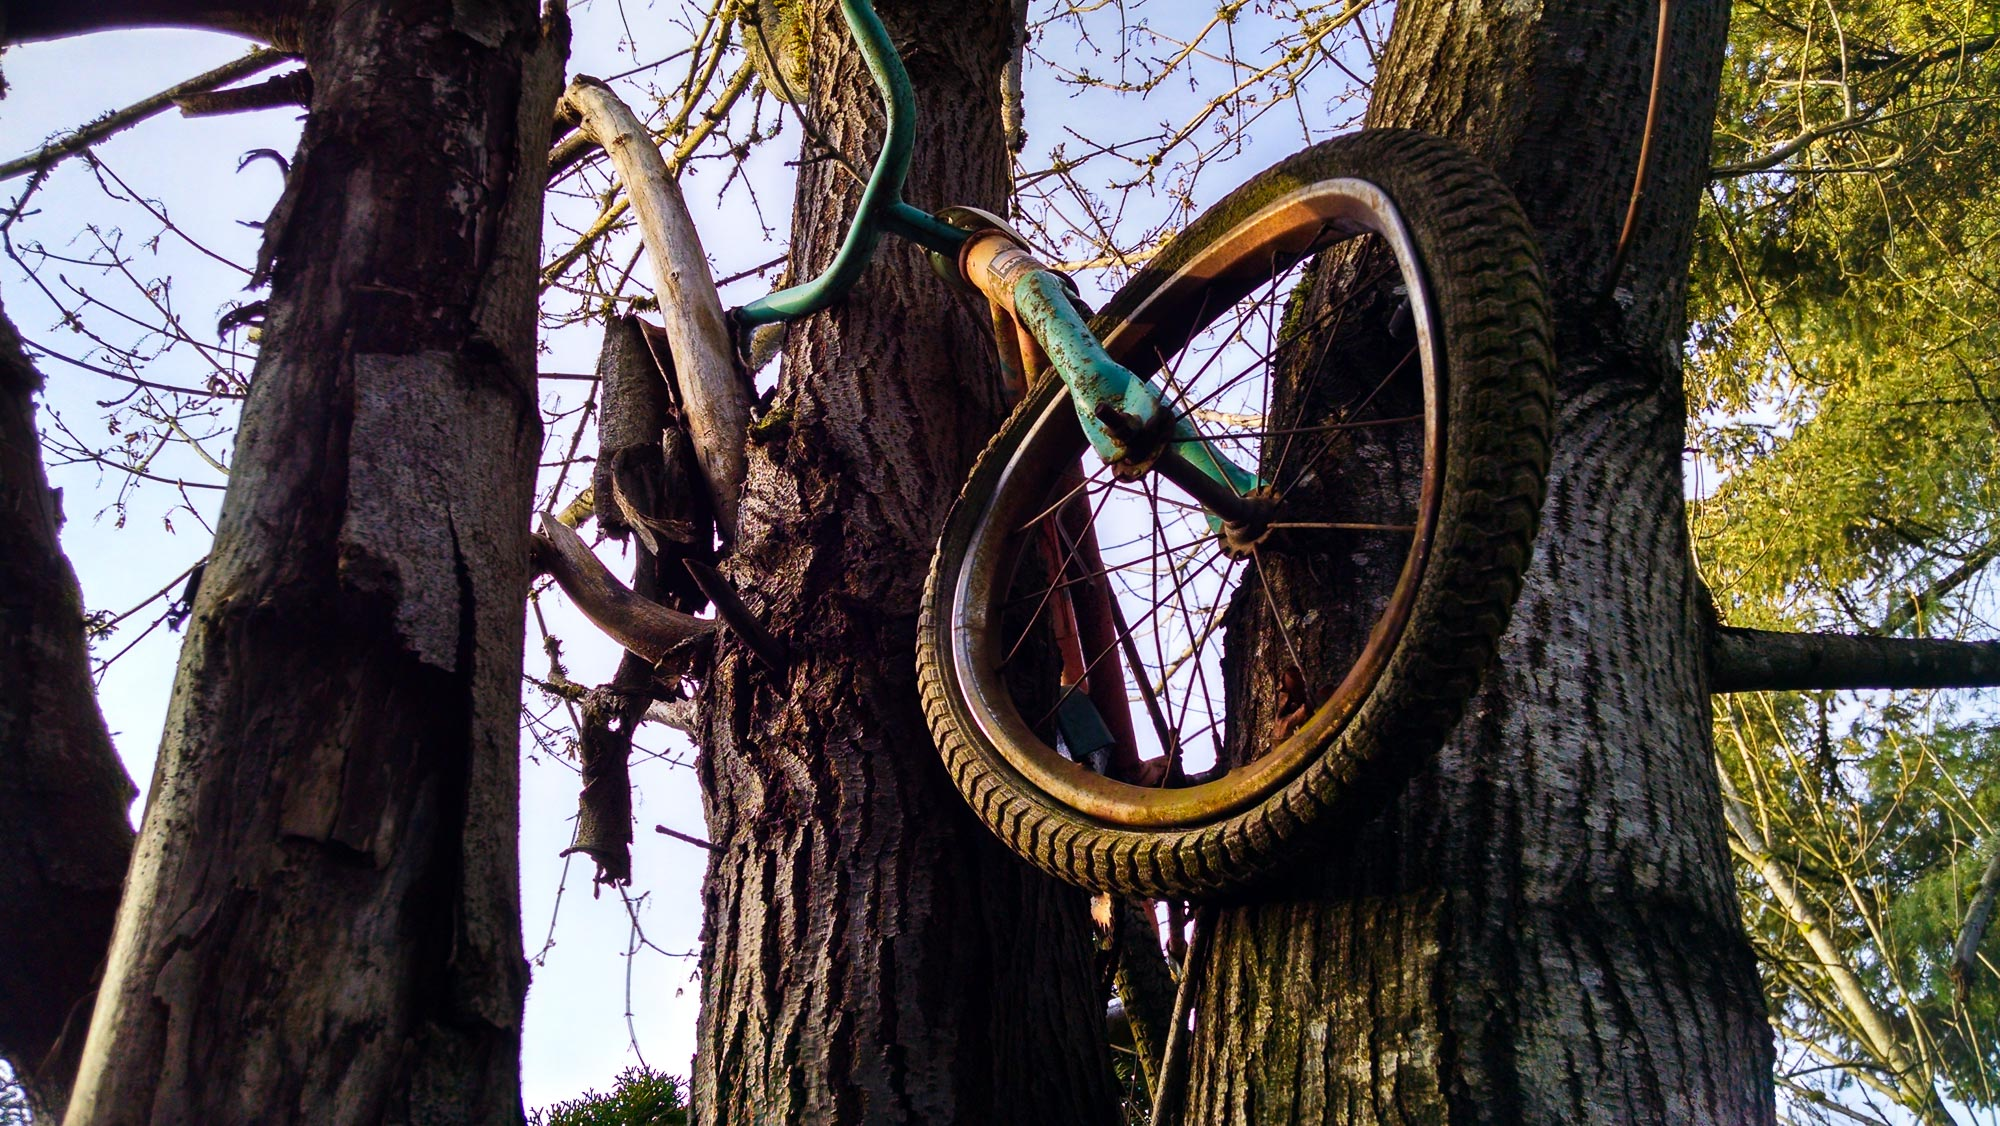 tree-service-removal-pruning-salem-oregon-863